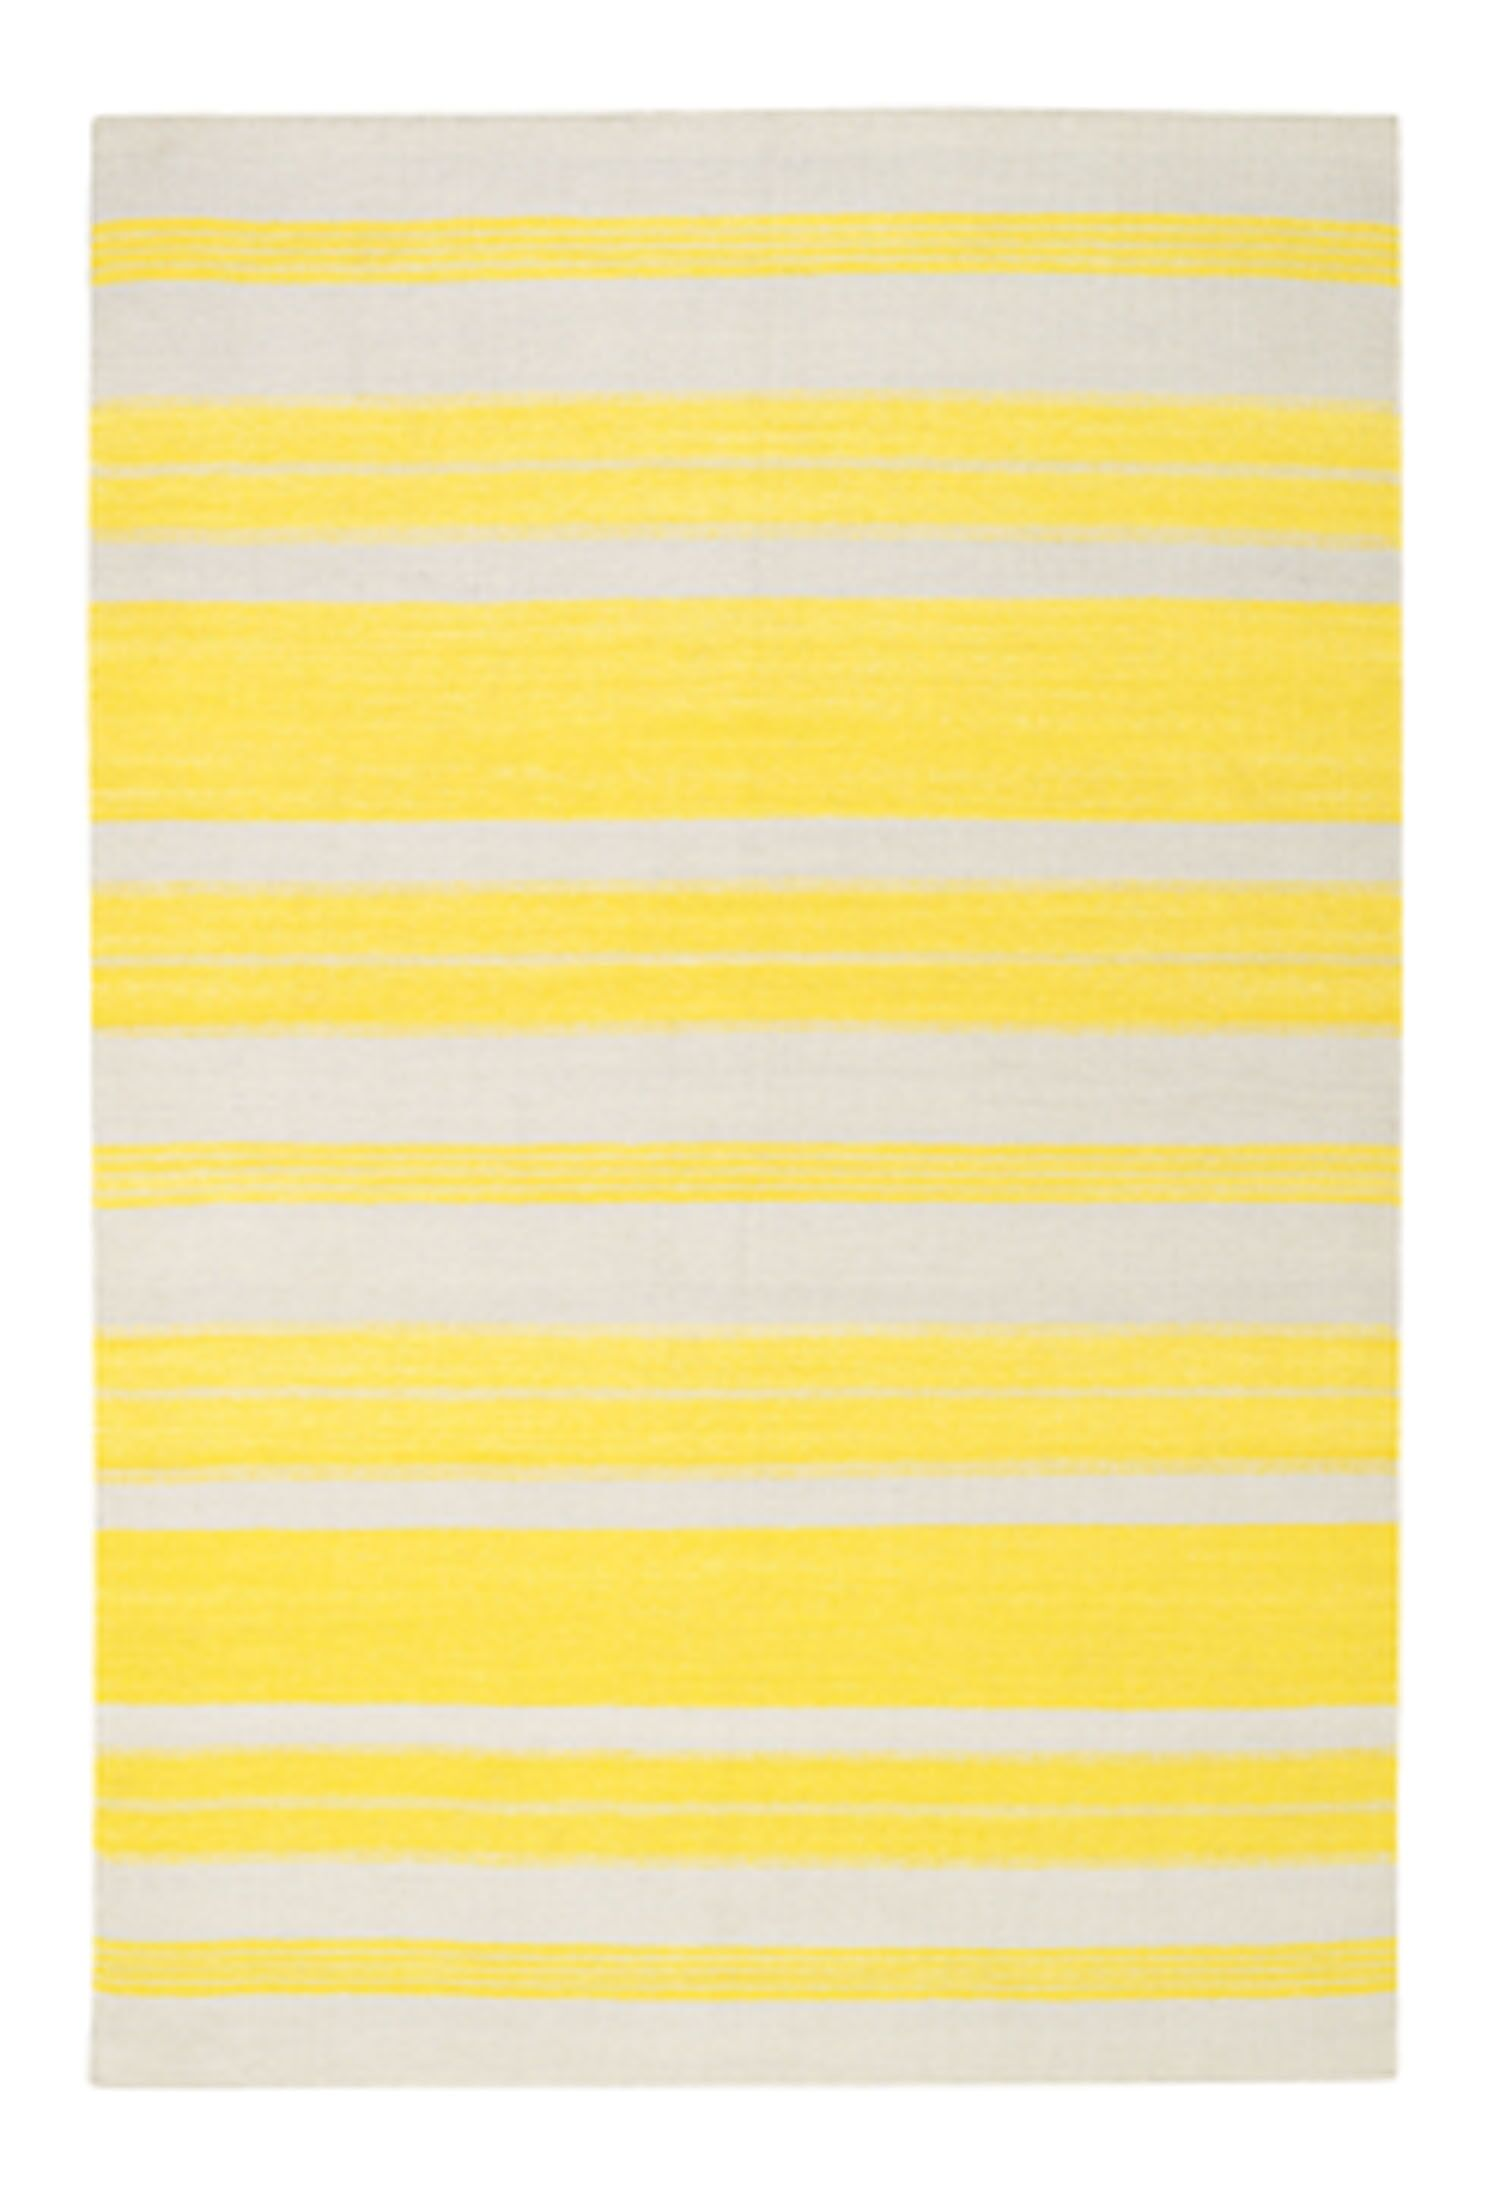 Jagges Stripe Leo Sun Area Rug Rug Size: Rectangle 8' x 11'